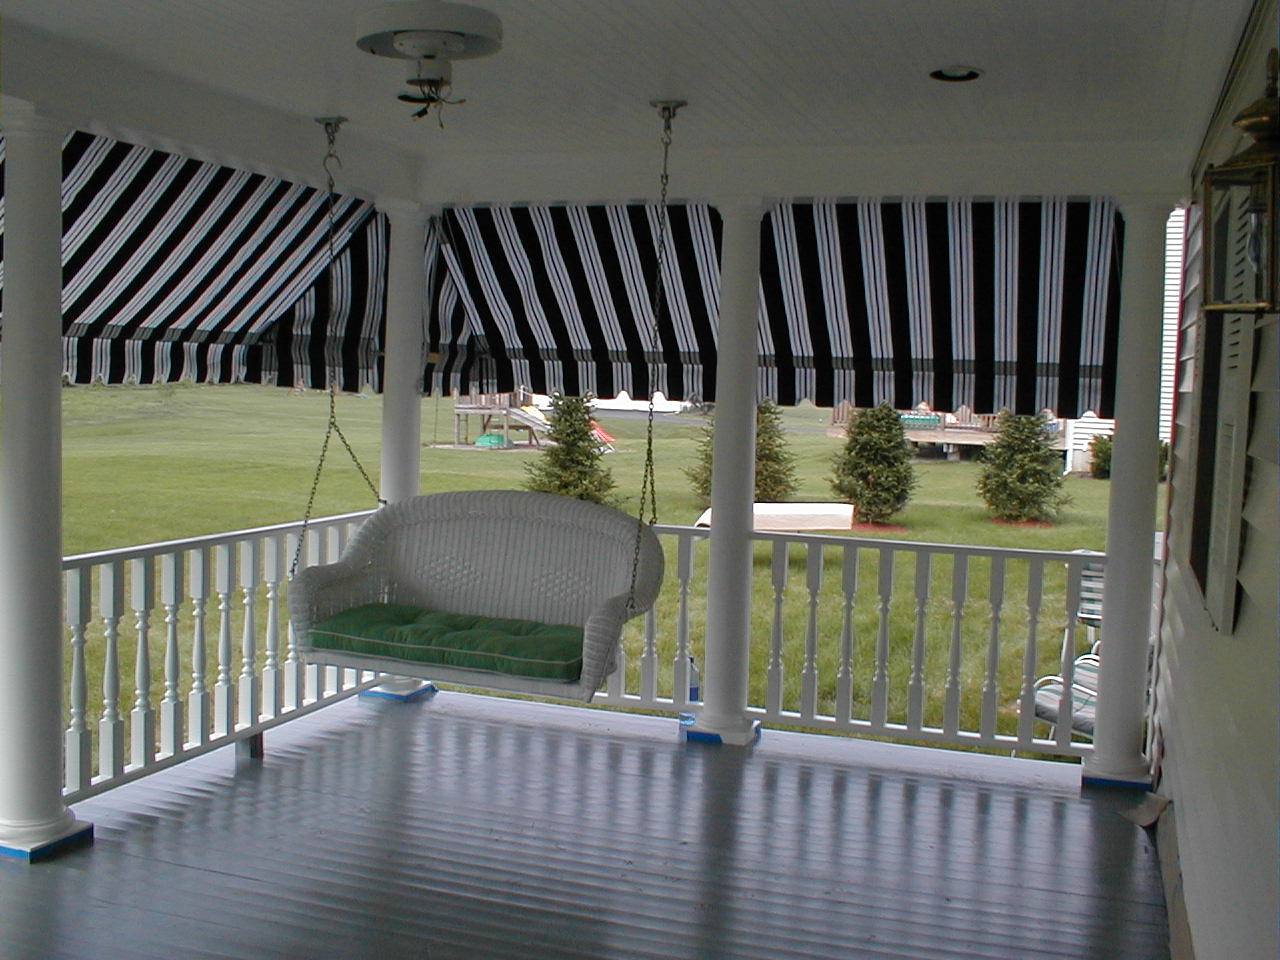 home homes awnings ideas front fabric awning your jburgh for homesjburgh best porch